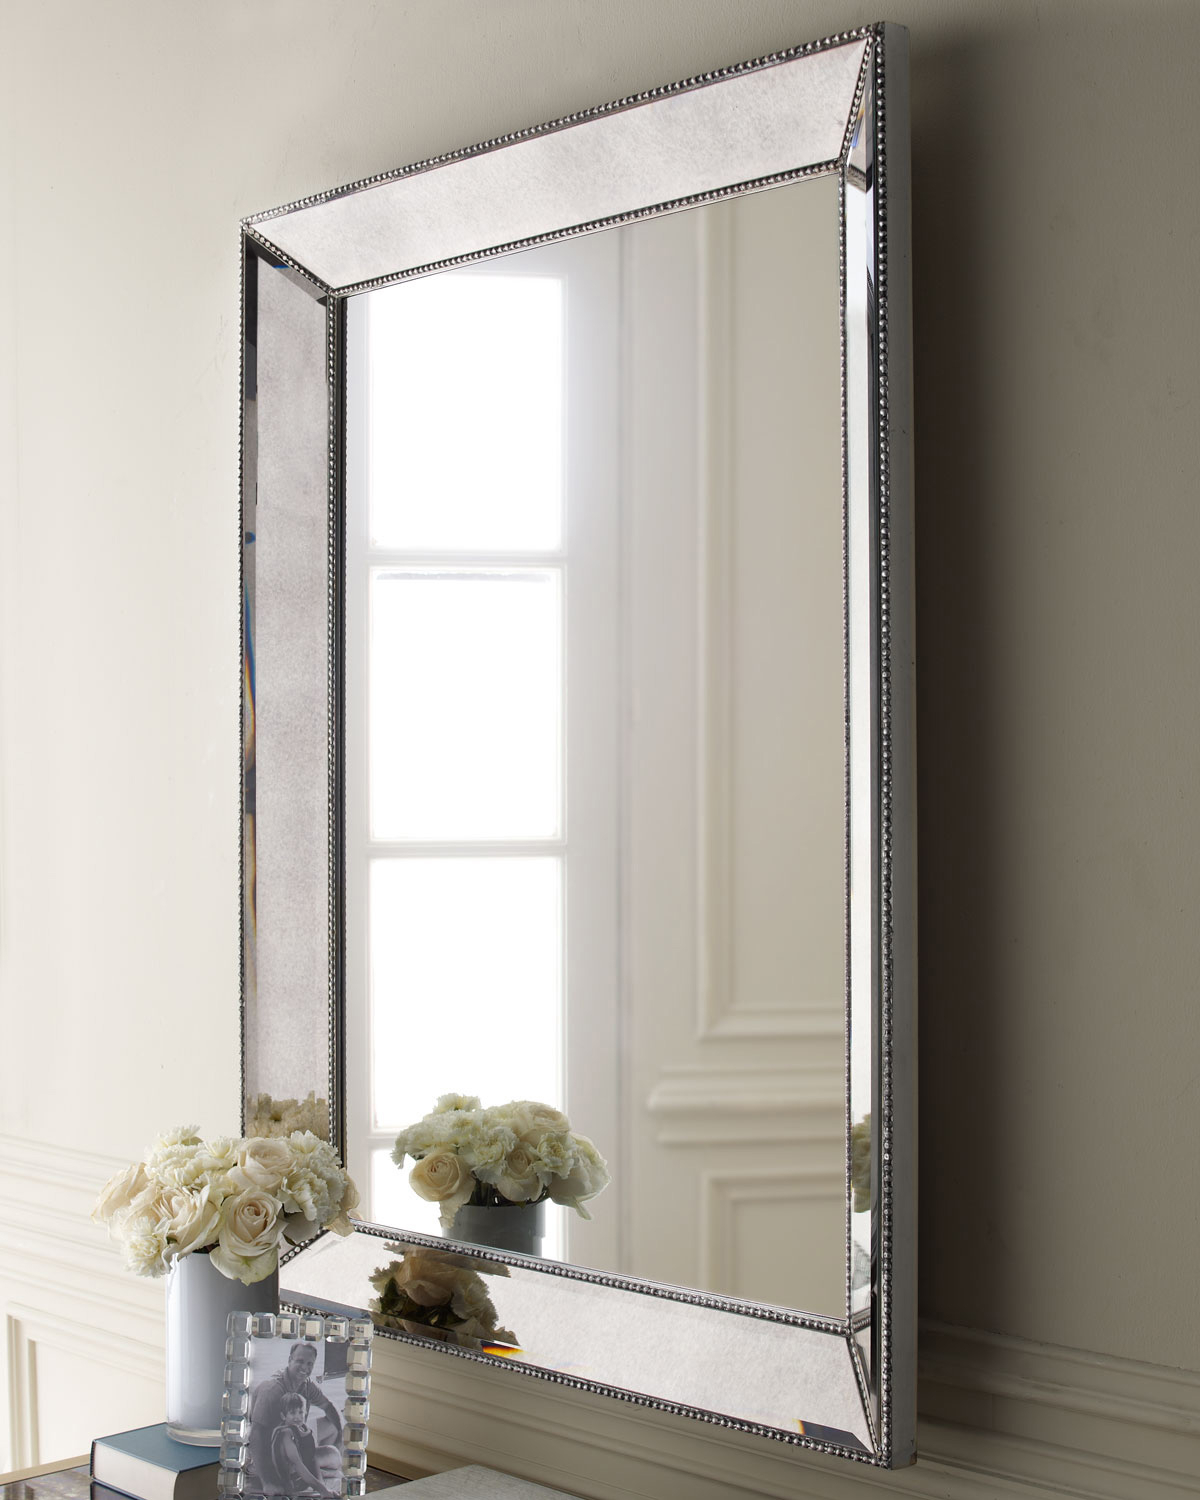 Brown Interior Accent With Reference To Metal Framed Mirrors With Regard To Beaded Accent Wall Mirrors (View 13 of 20)